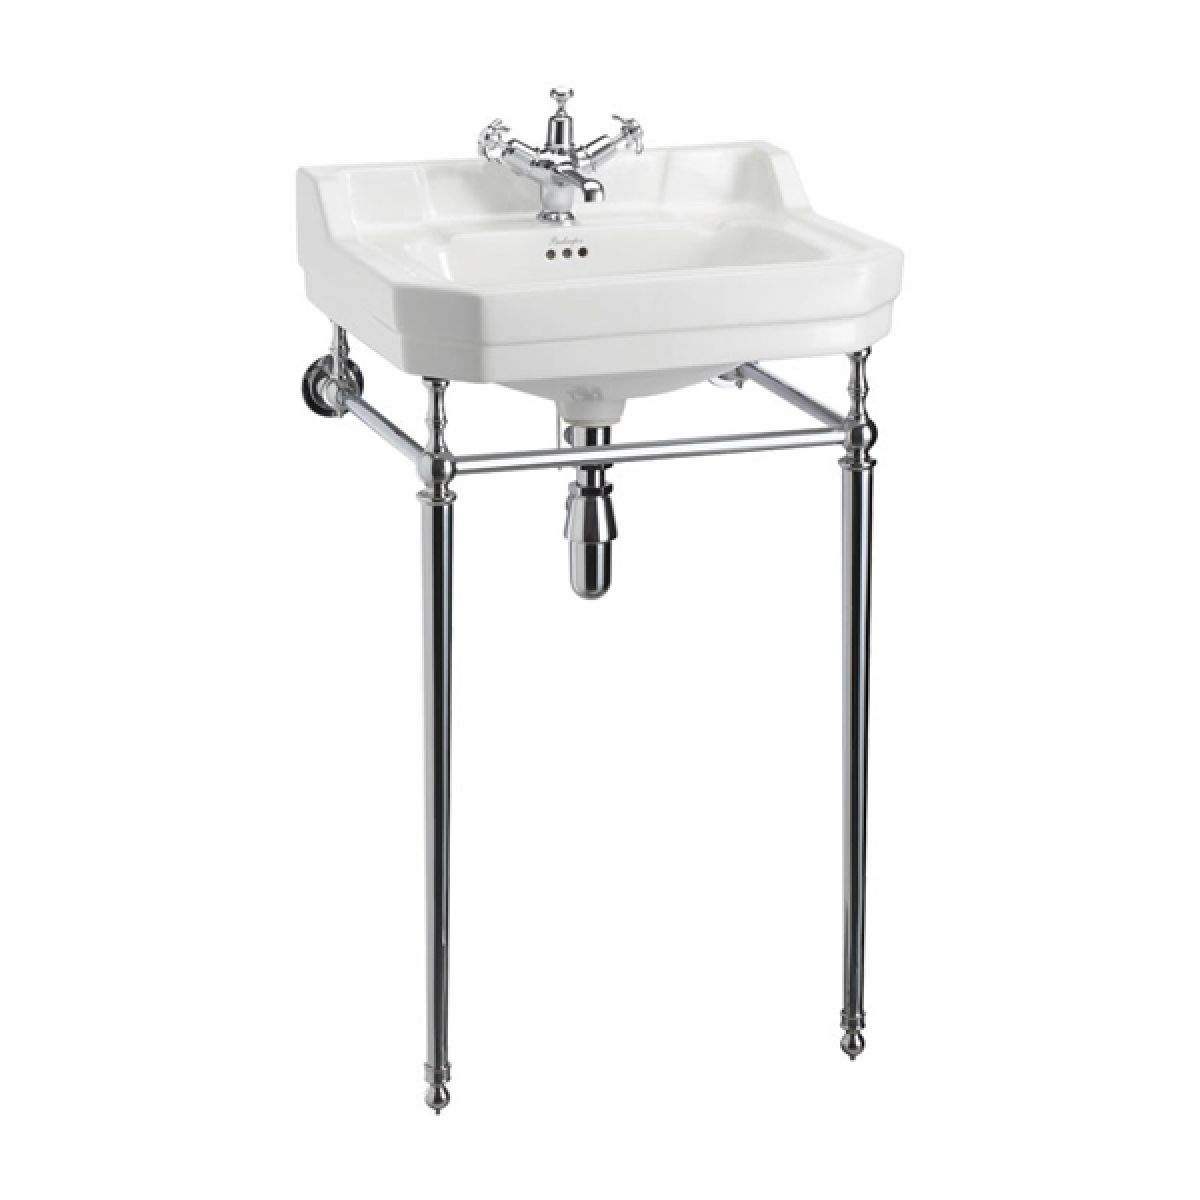 Burlington Edwardian Basin with Chrome Stand 560mm